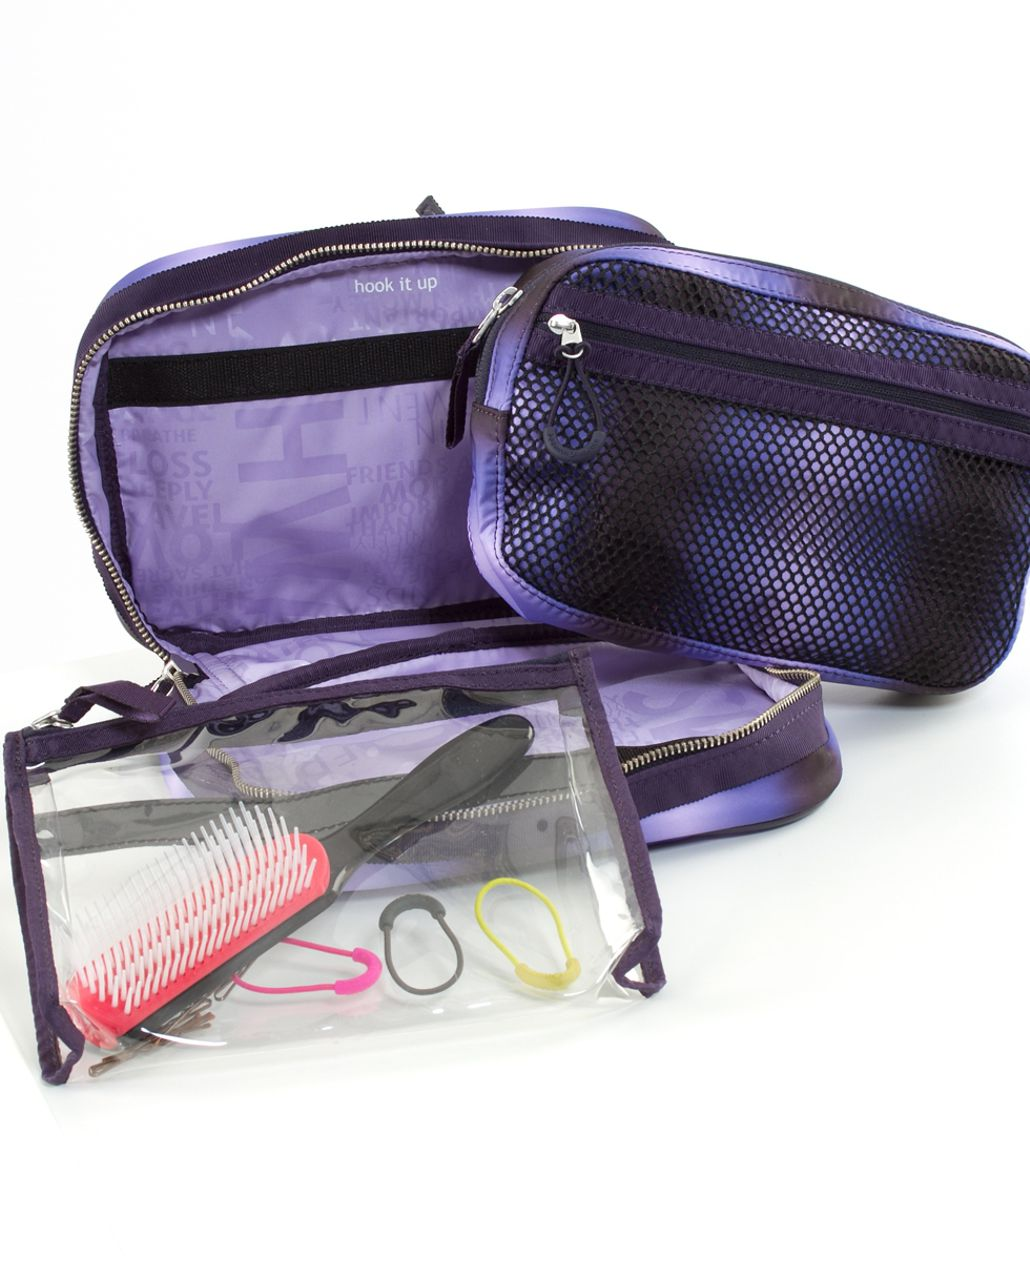 Lululemon Gym Essentials Kit - Black Swan Persian Purple Lilac Gradient